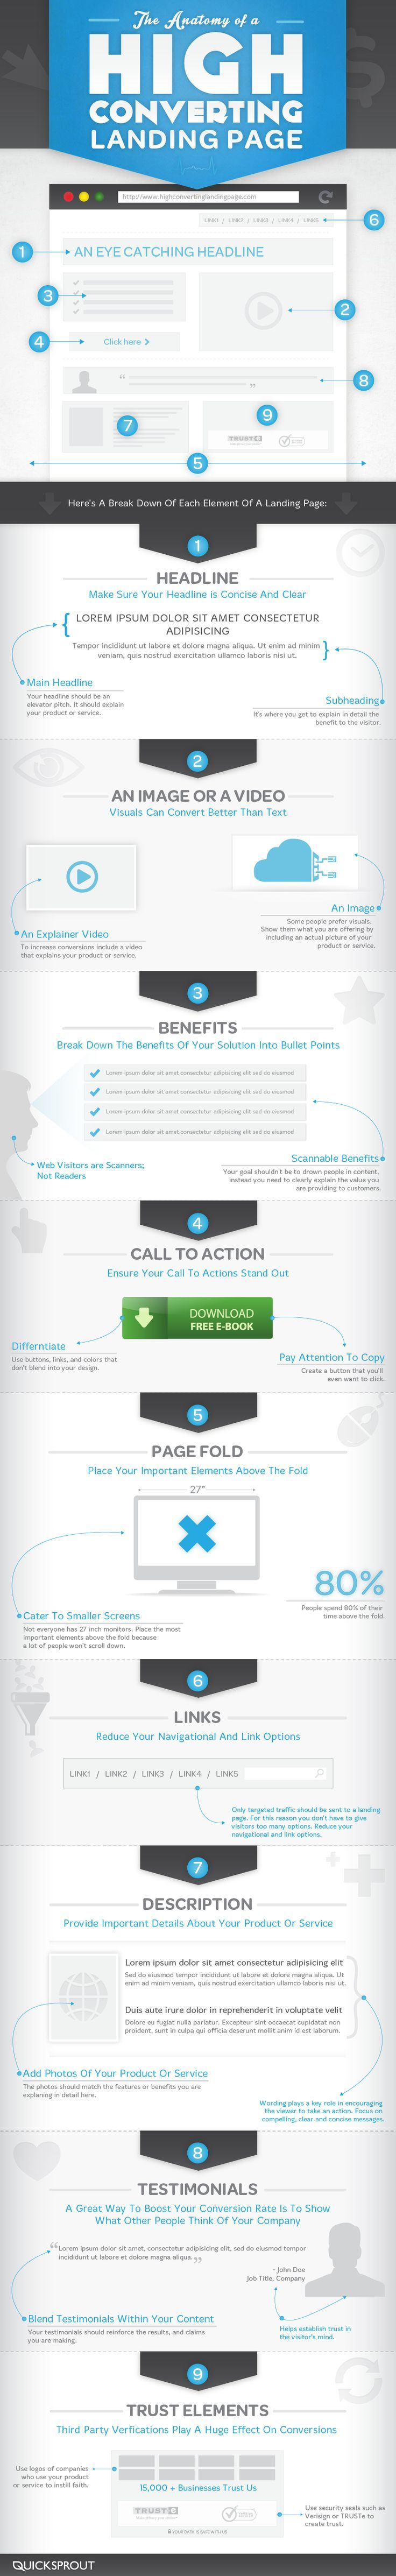 The Anatomy of a High Converting Landing Page [Infographic]: